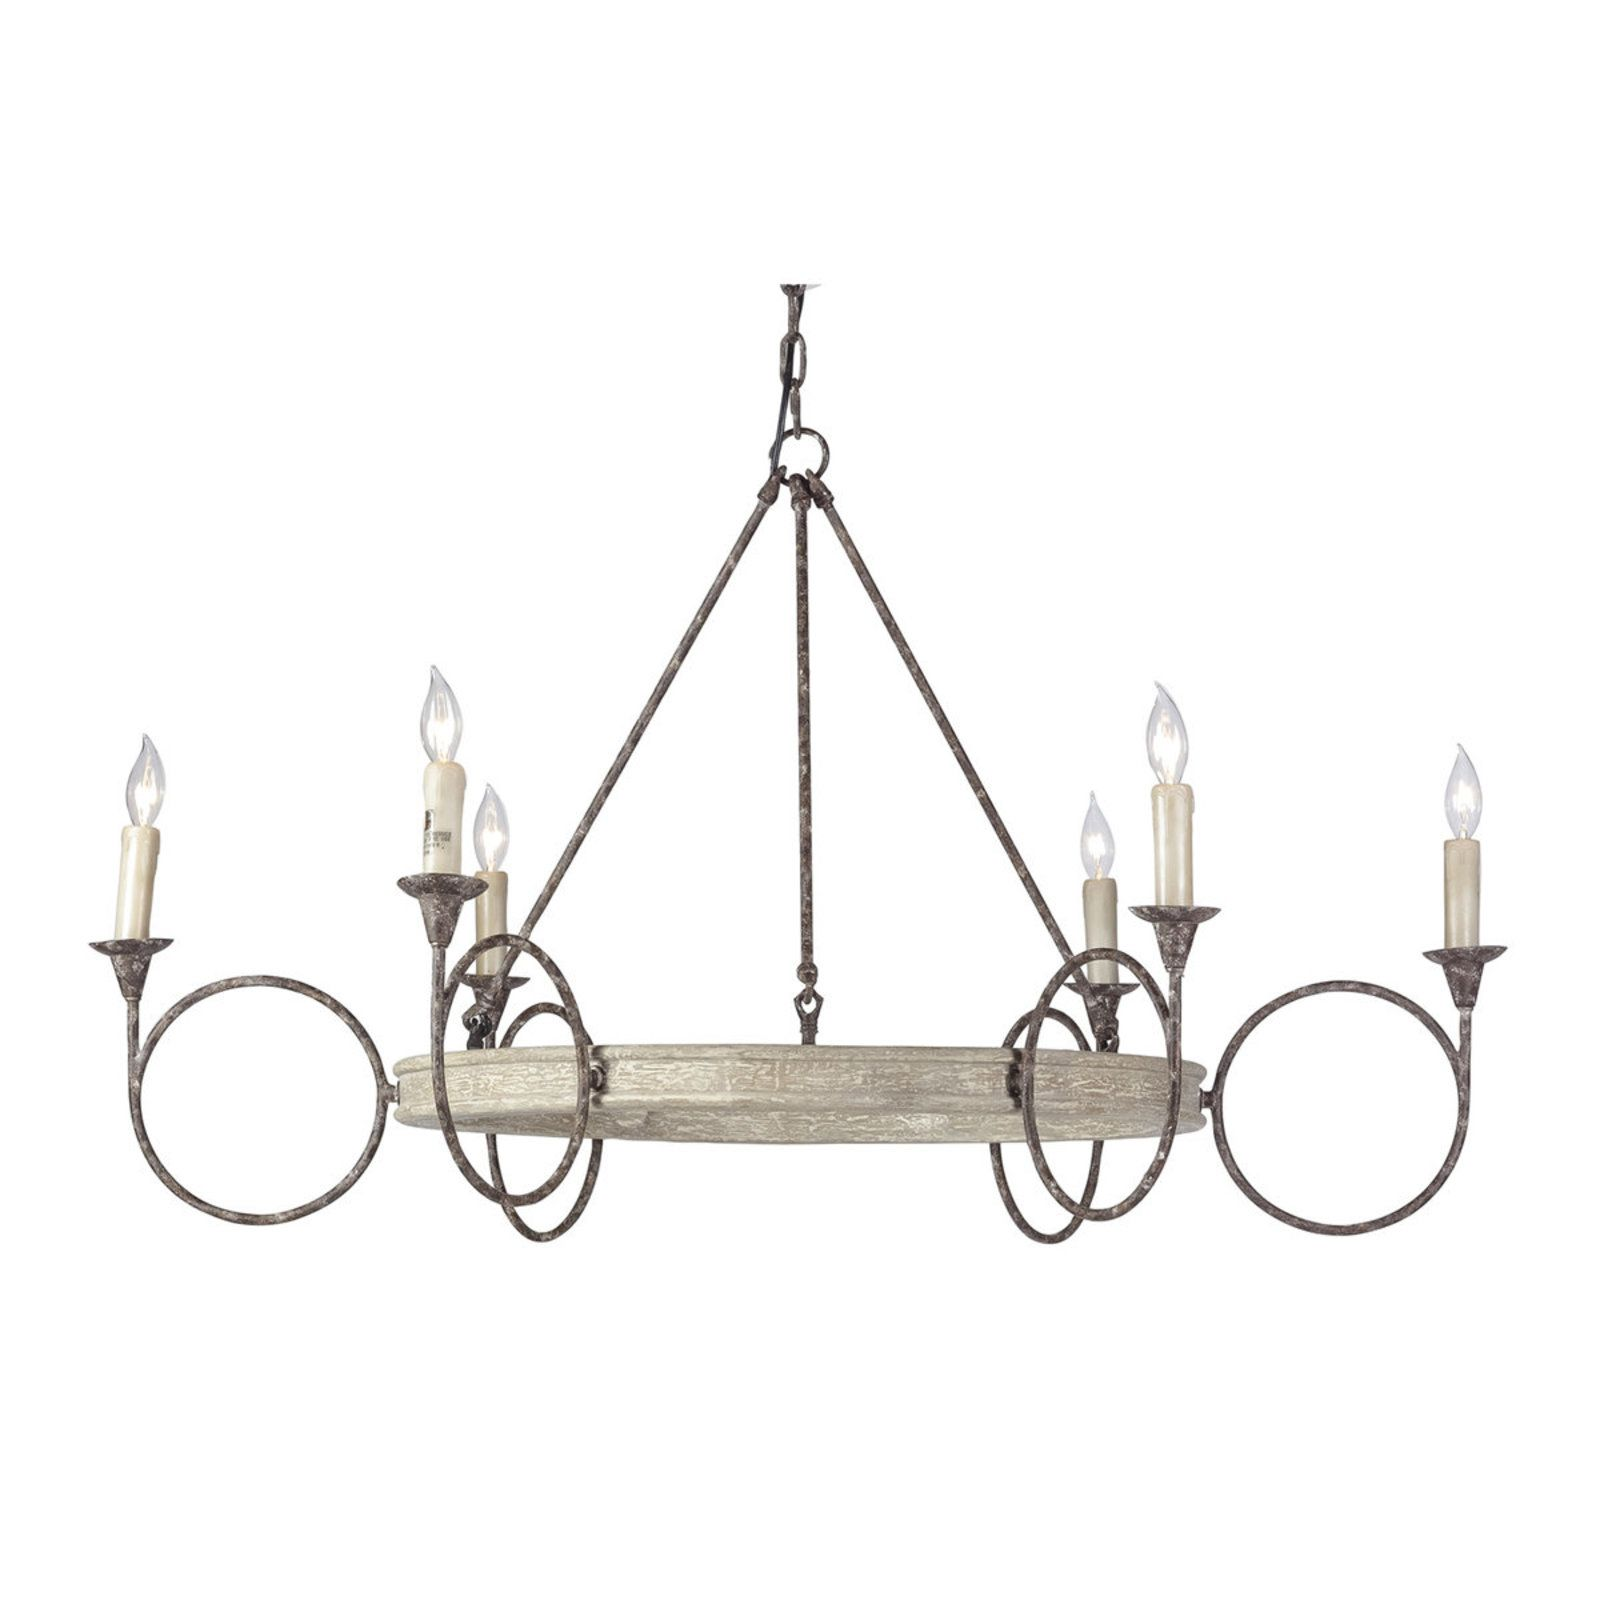 Wide Whitewashed Candlestick Chandelier